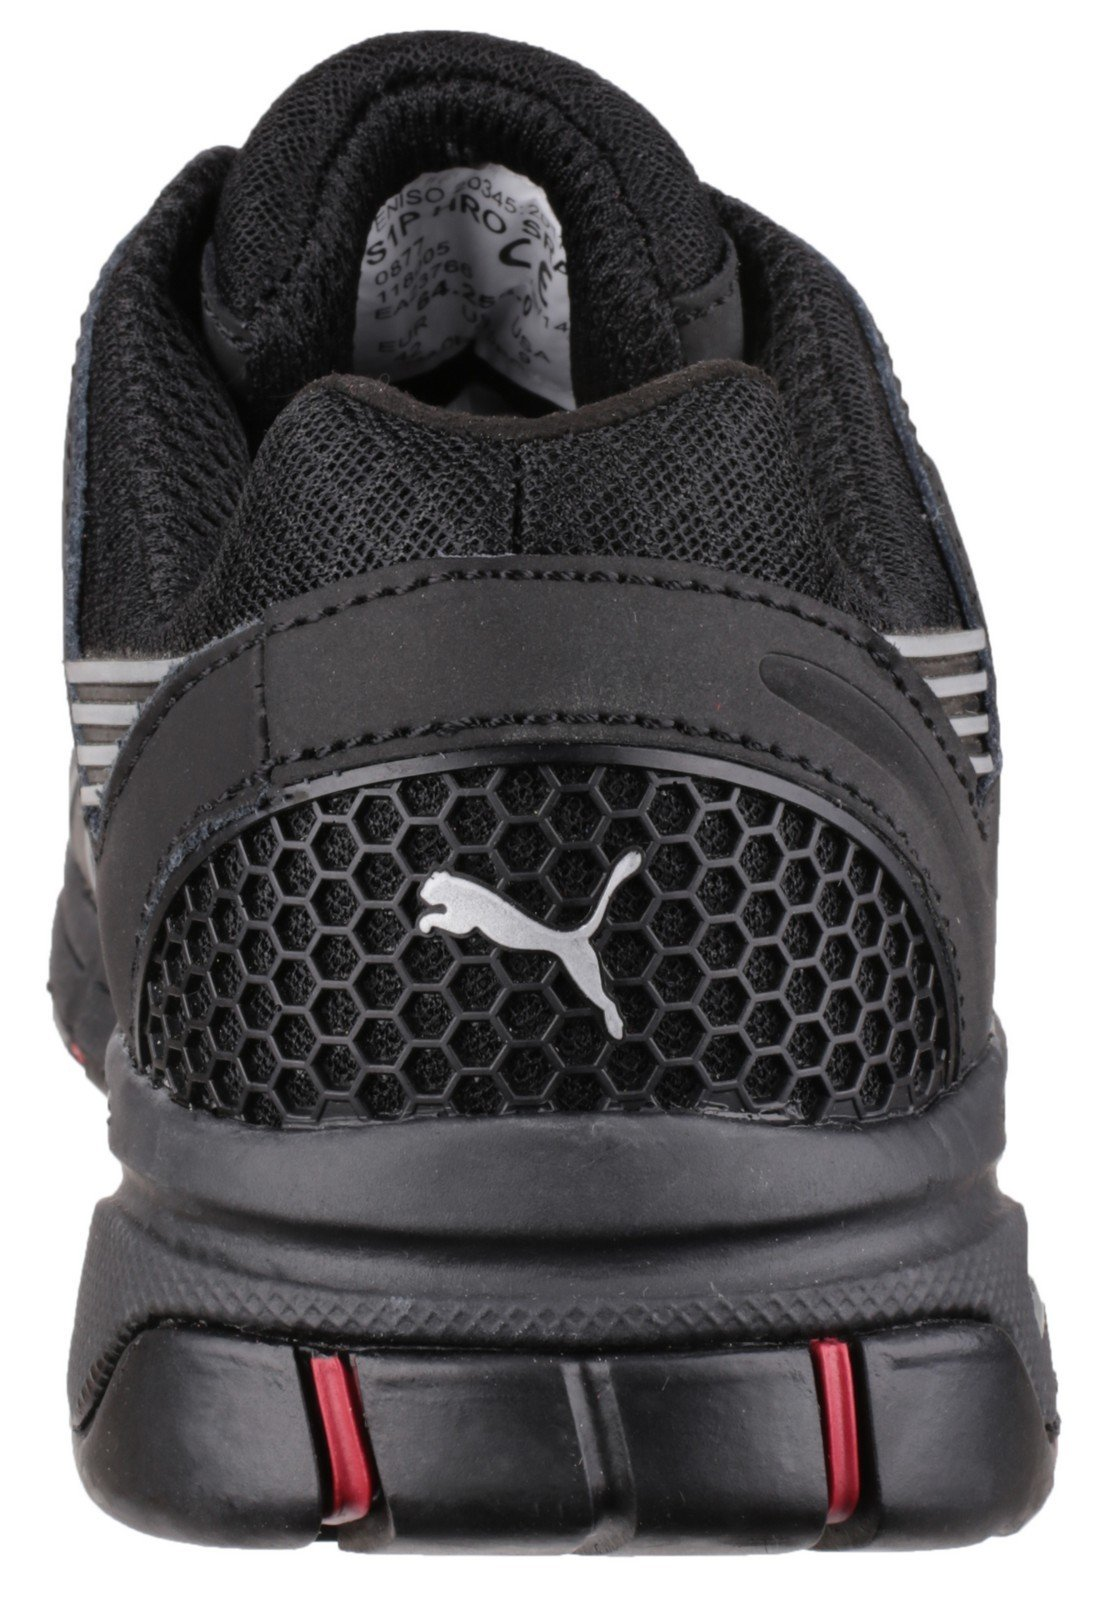 Puma Fuse Motion Black Low Safety Boot (EUR 46 US 12) by -puma (Image #3)